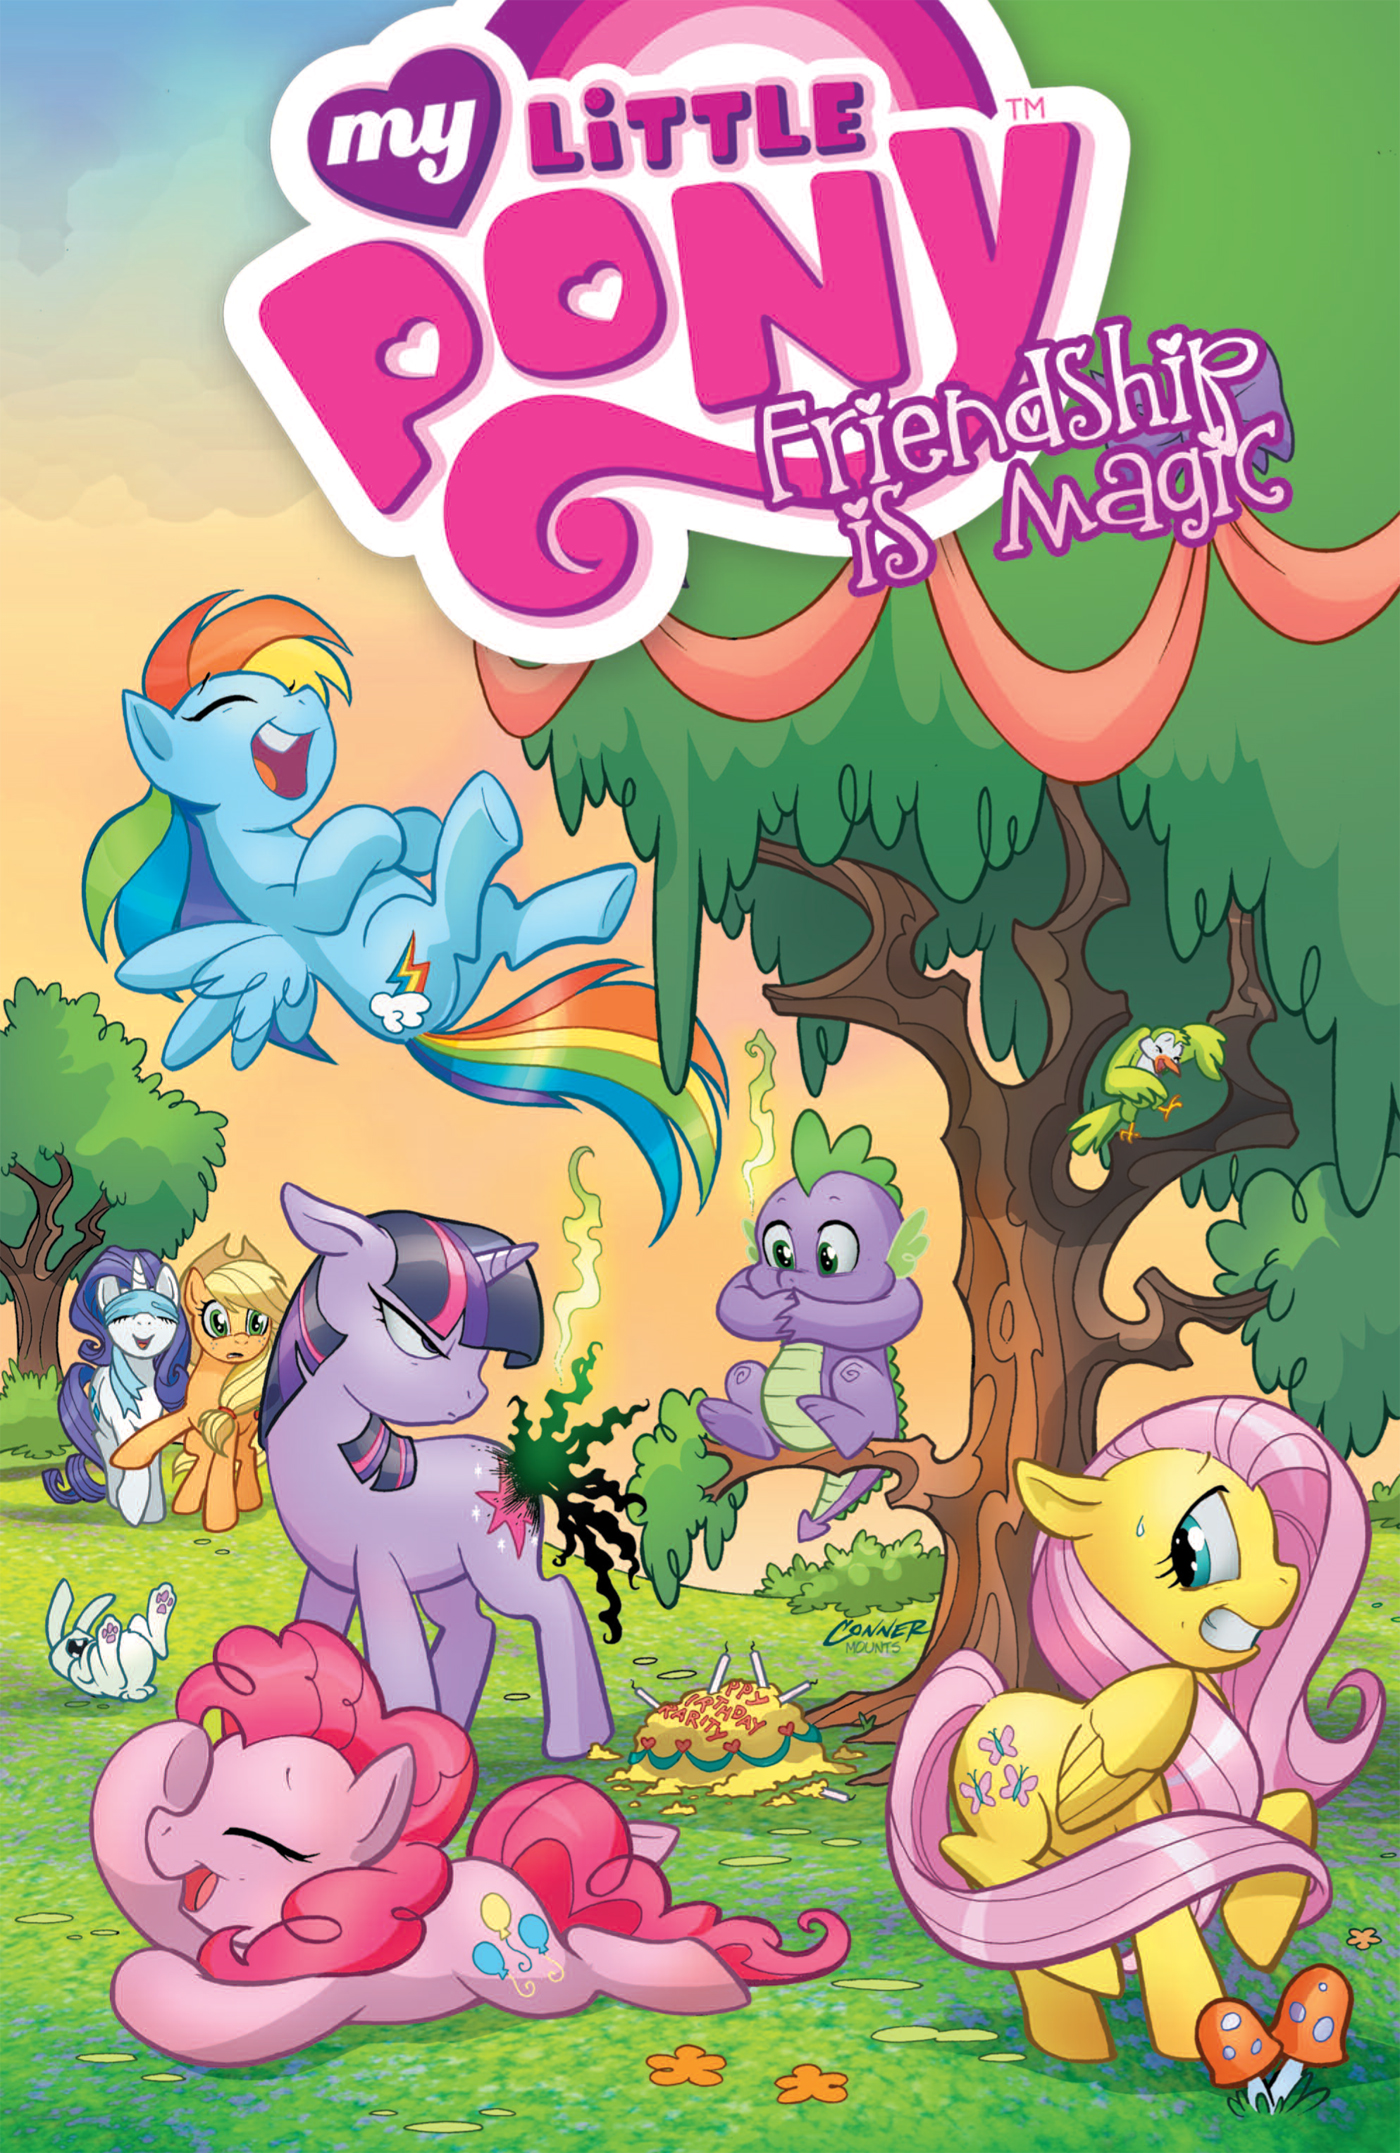 My Little Pony: Friendship is Magic Vol. 1